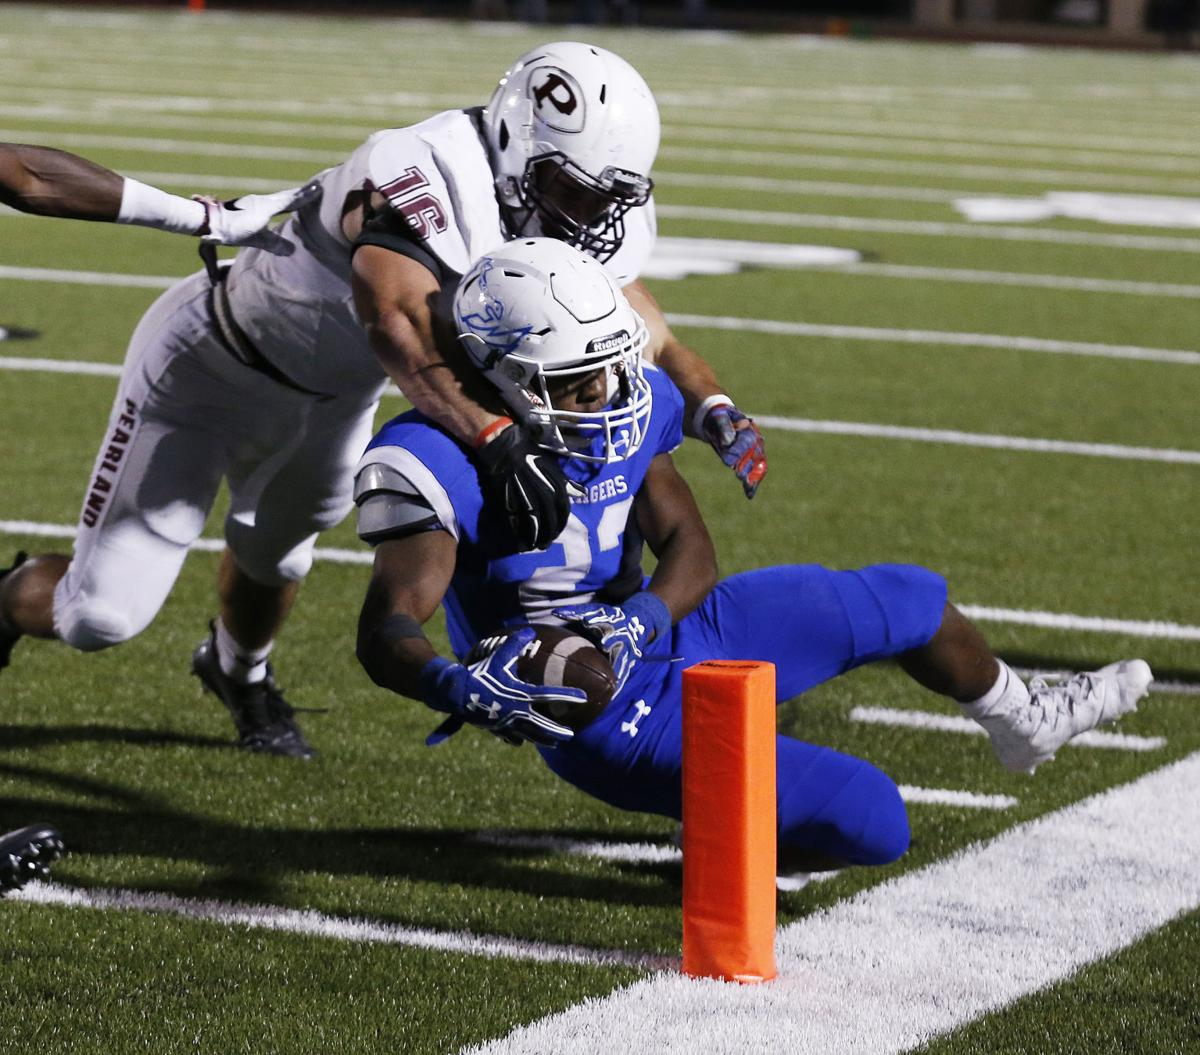 Clear Springs vs. Pearland bi-district playoff